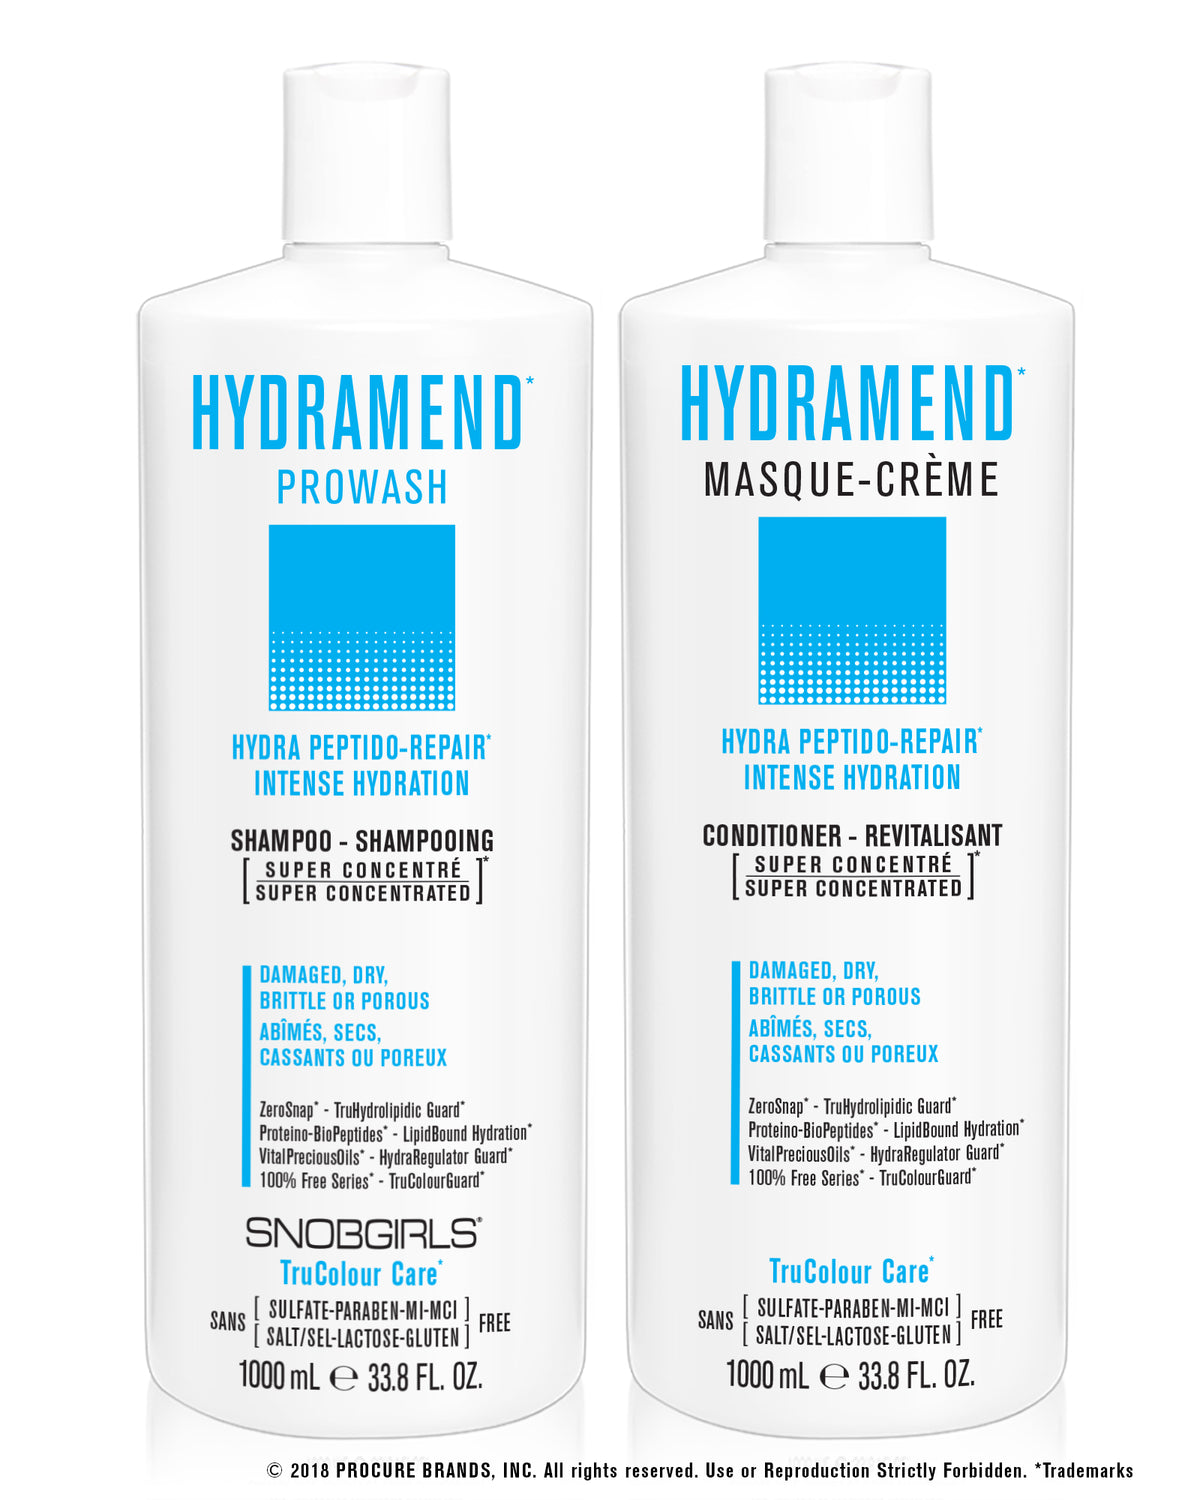 DUO HYDRAMEND - Prowash + Masque-Creme 1000 mL - SNOBGIRLS.com